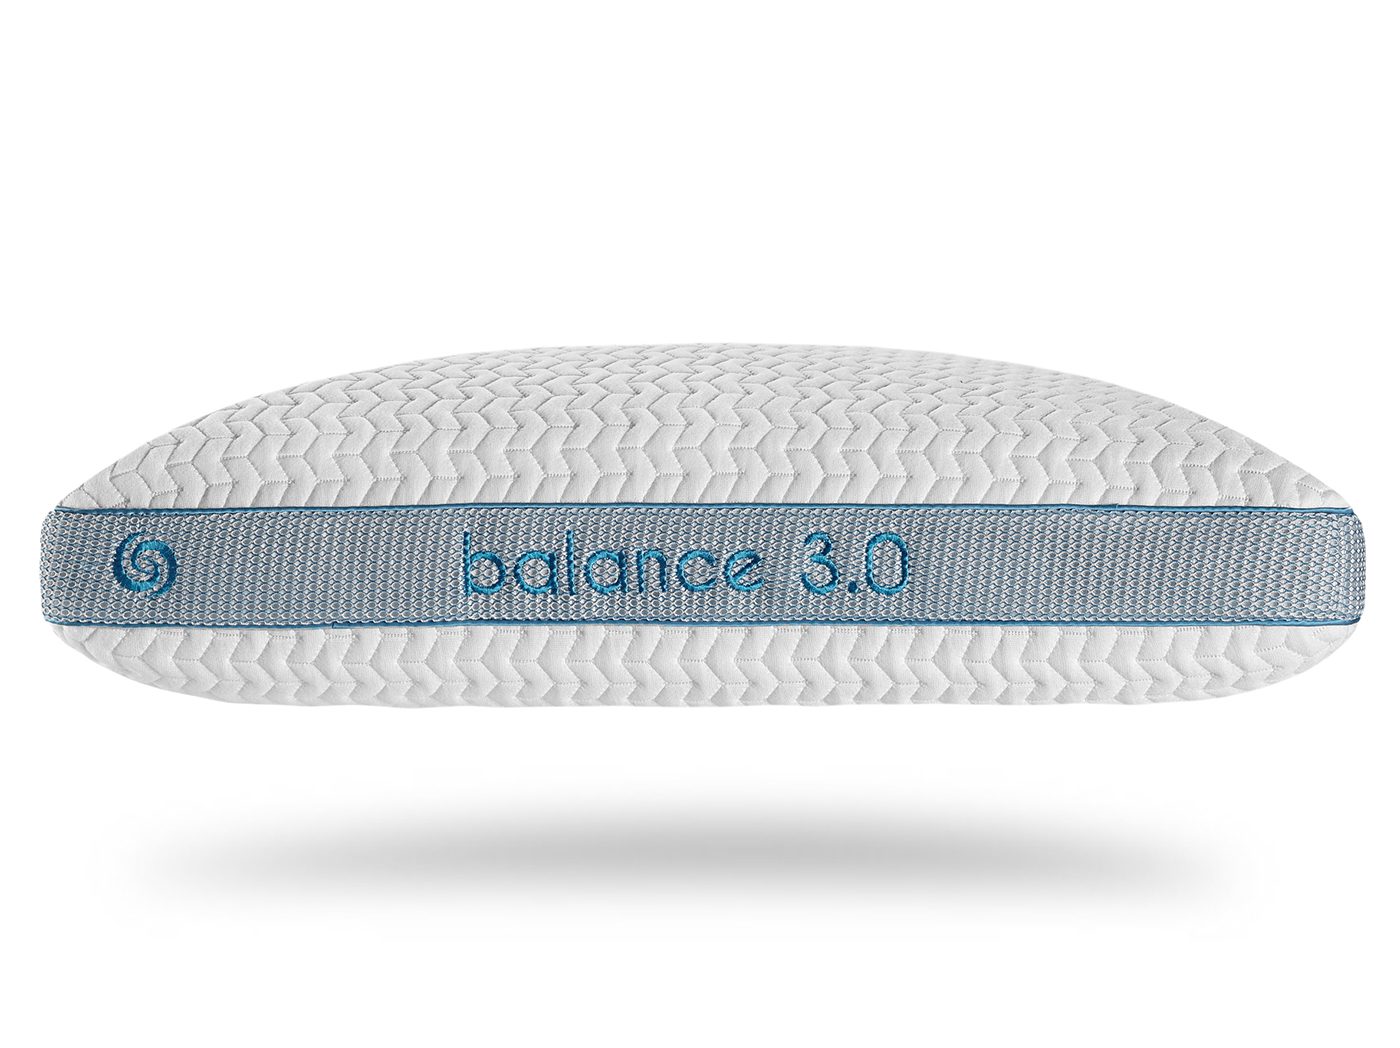 Bedgear Balance 3.0 Personal Pillow